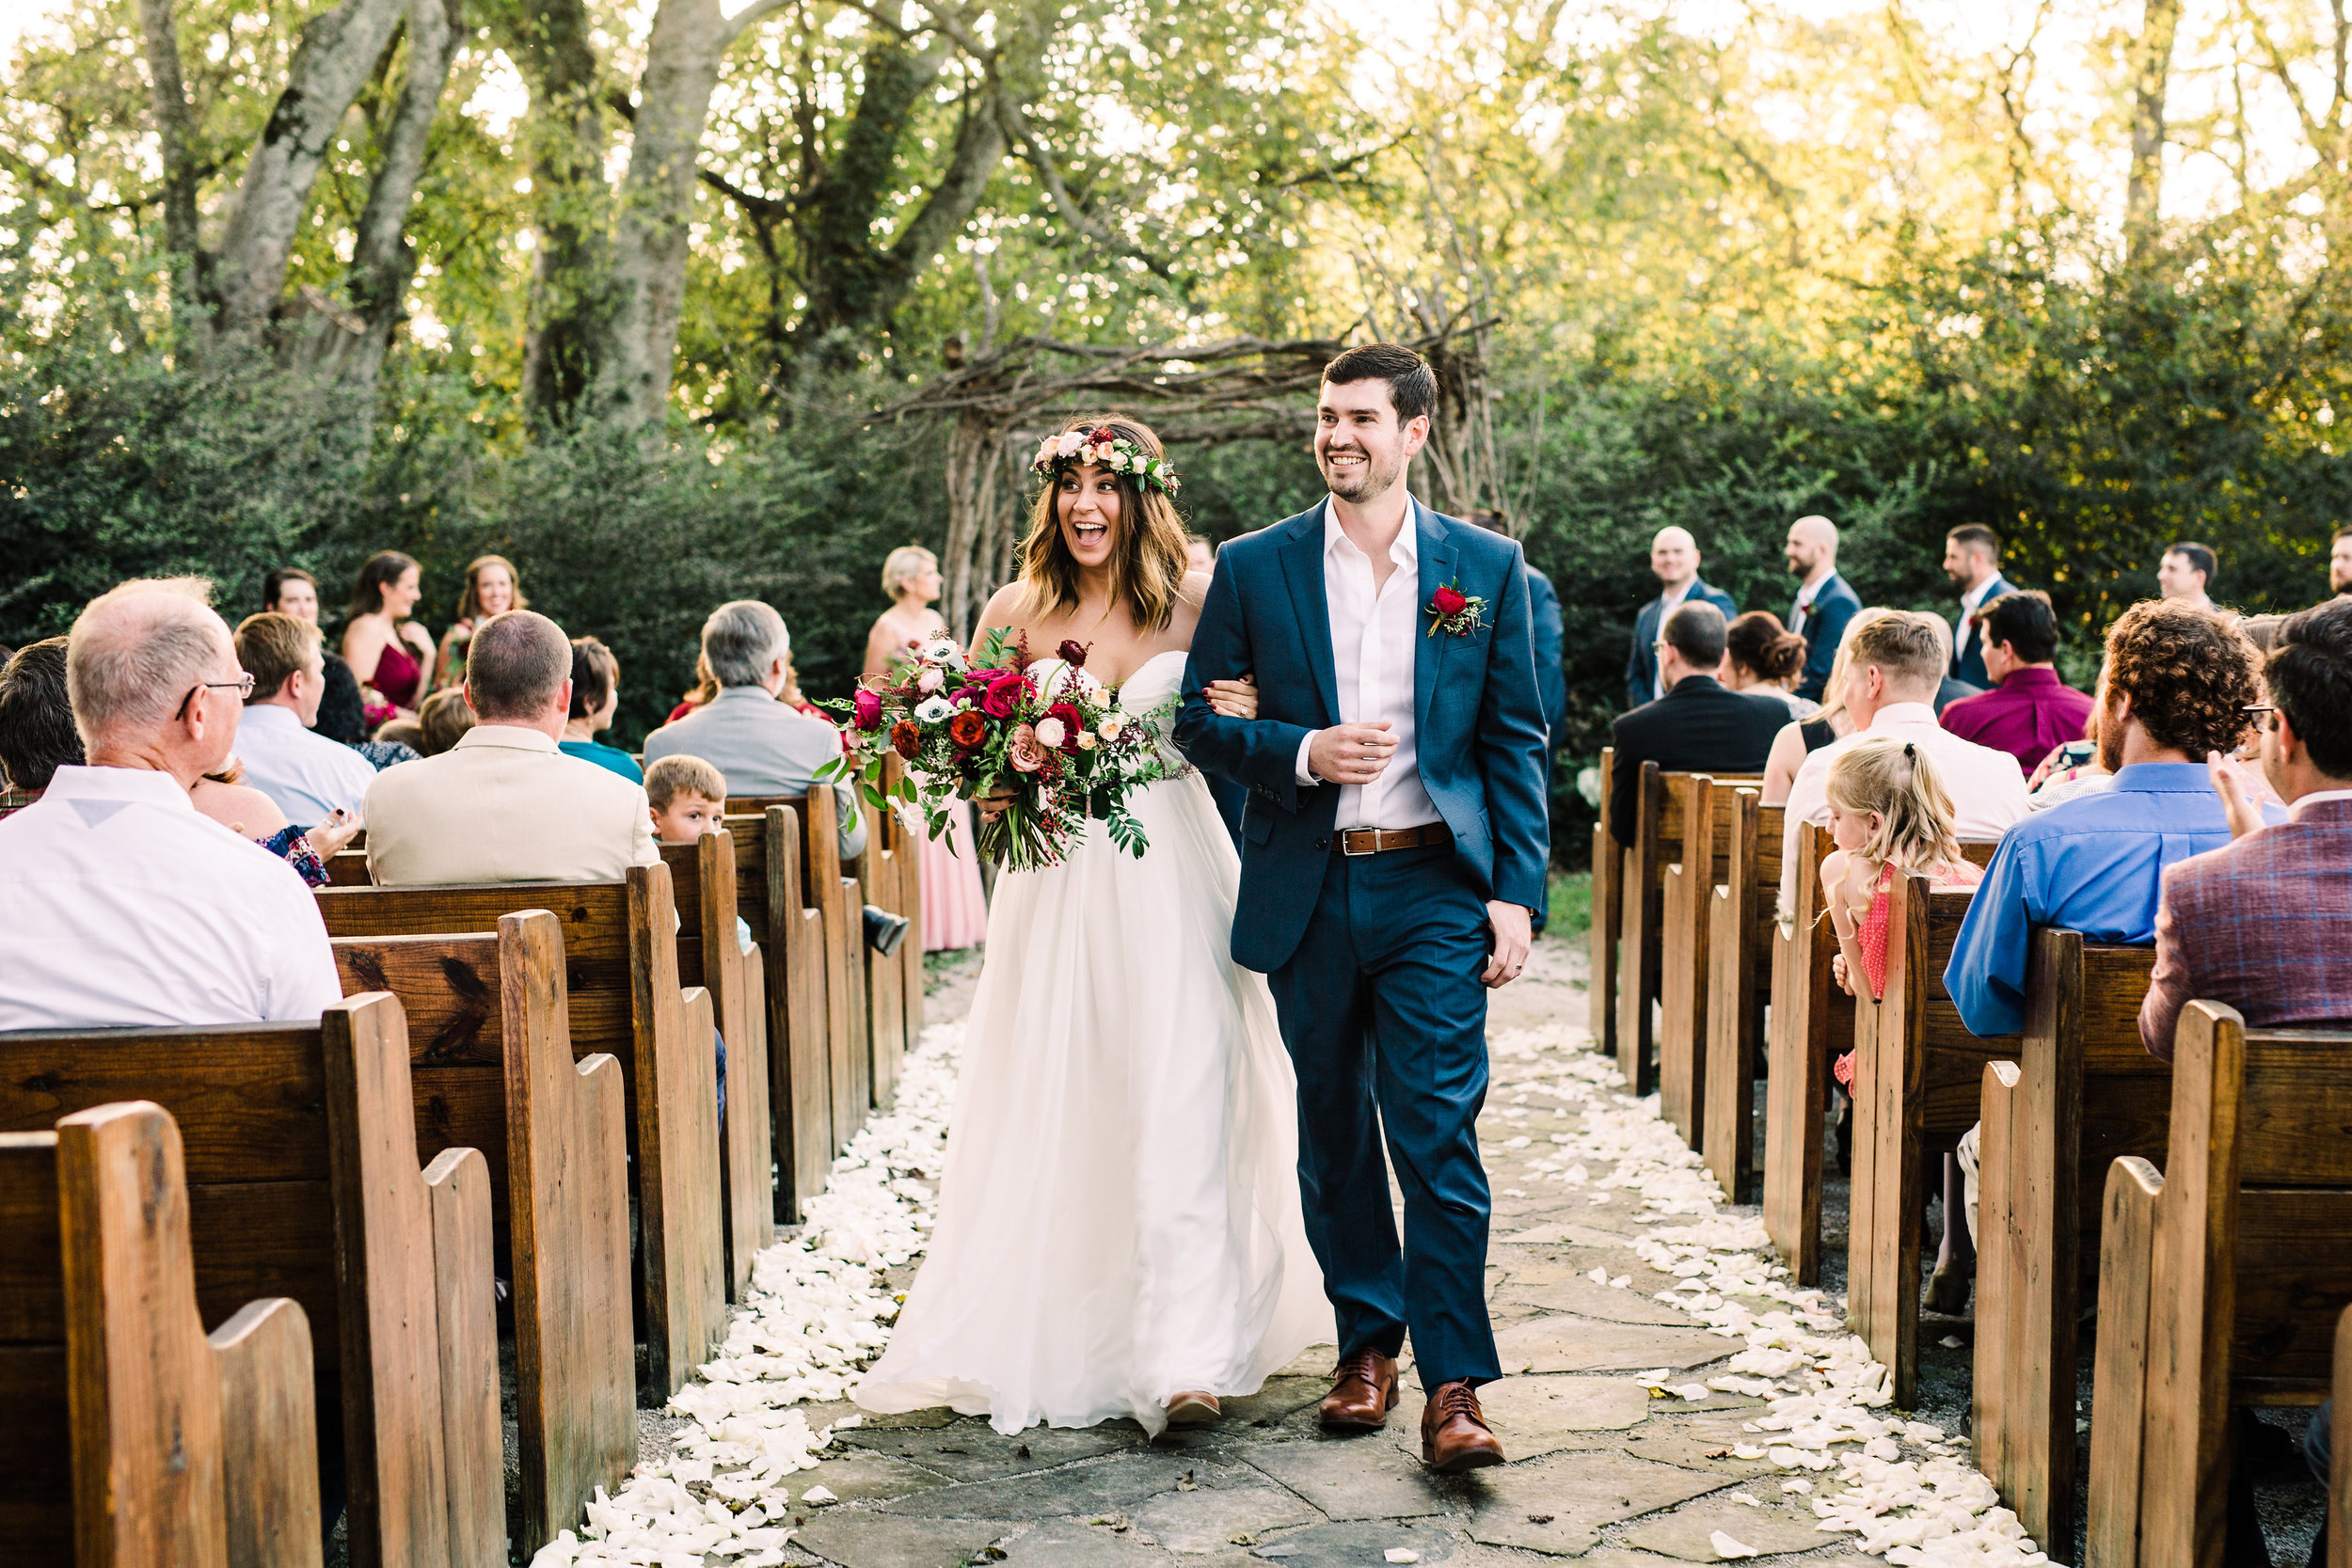 Meadow Hill Farm Wedding Ceremony with rose petal aisle